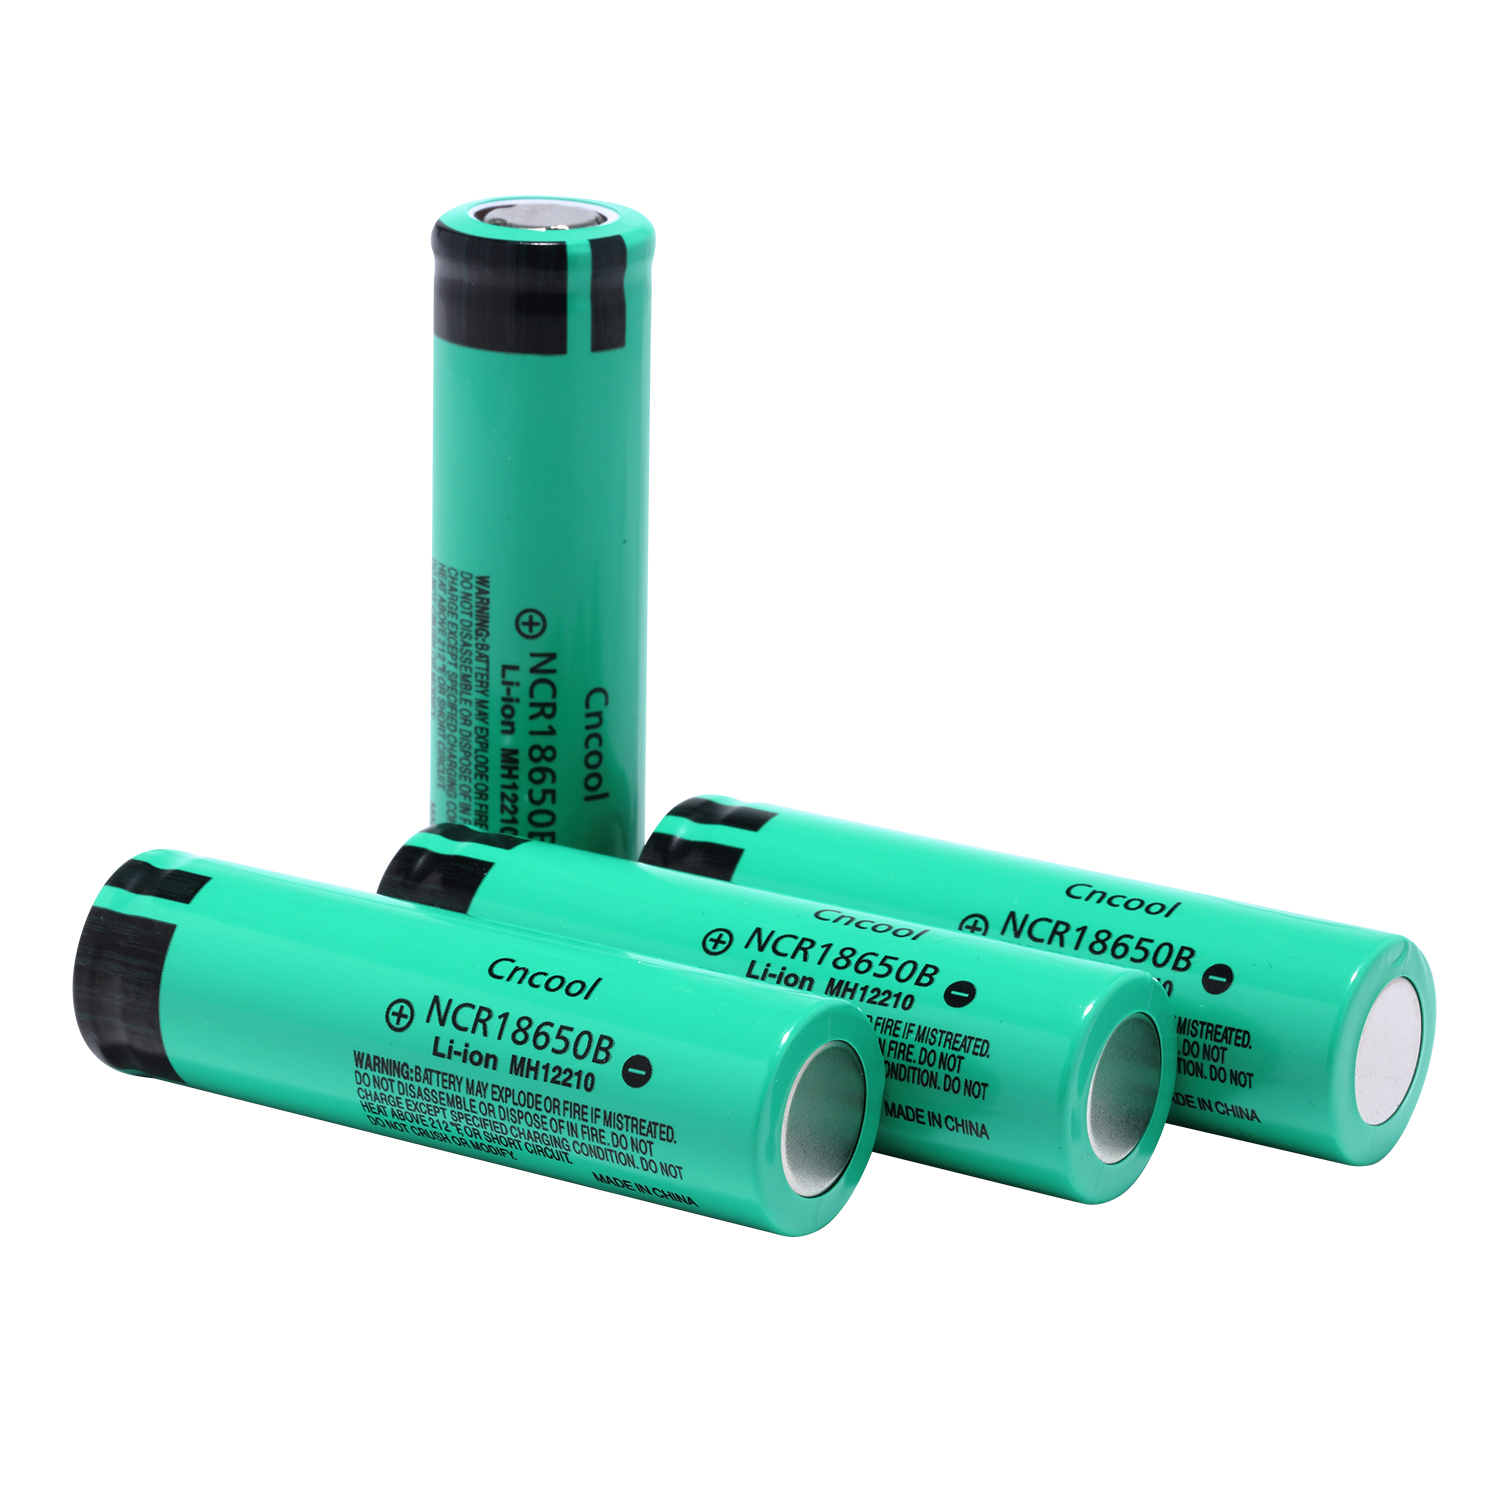 ZNTER 3 7V 1800mAh 18650 Battery 3 7 Voltage 18650 Rechargeable Lithium Batteries Li Ion 18650 Case Real Capacity batteries in Rechargeable Batteries from Consumer Electronics